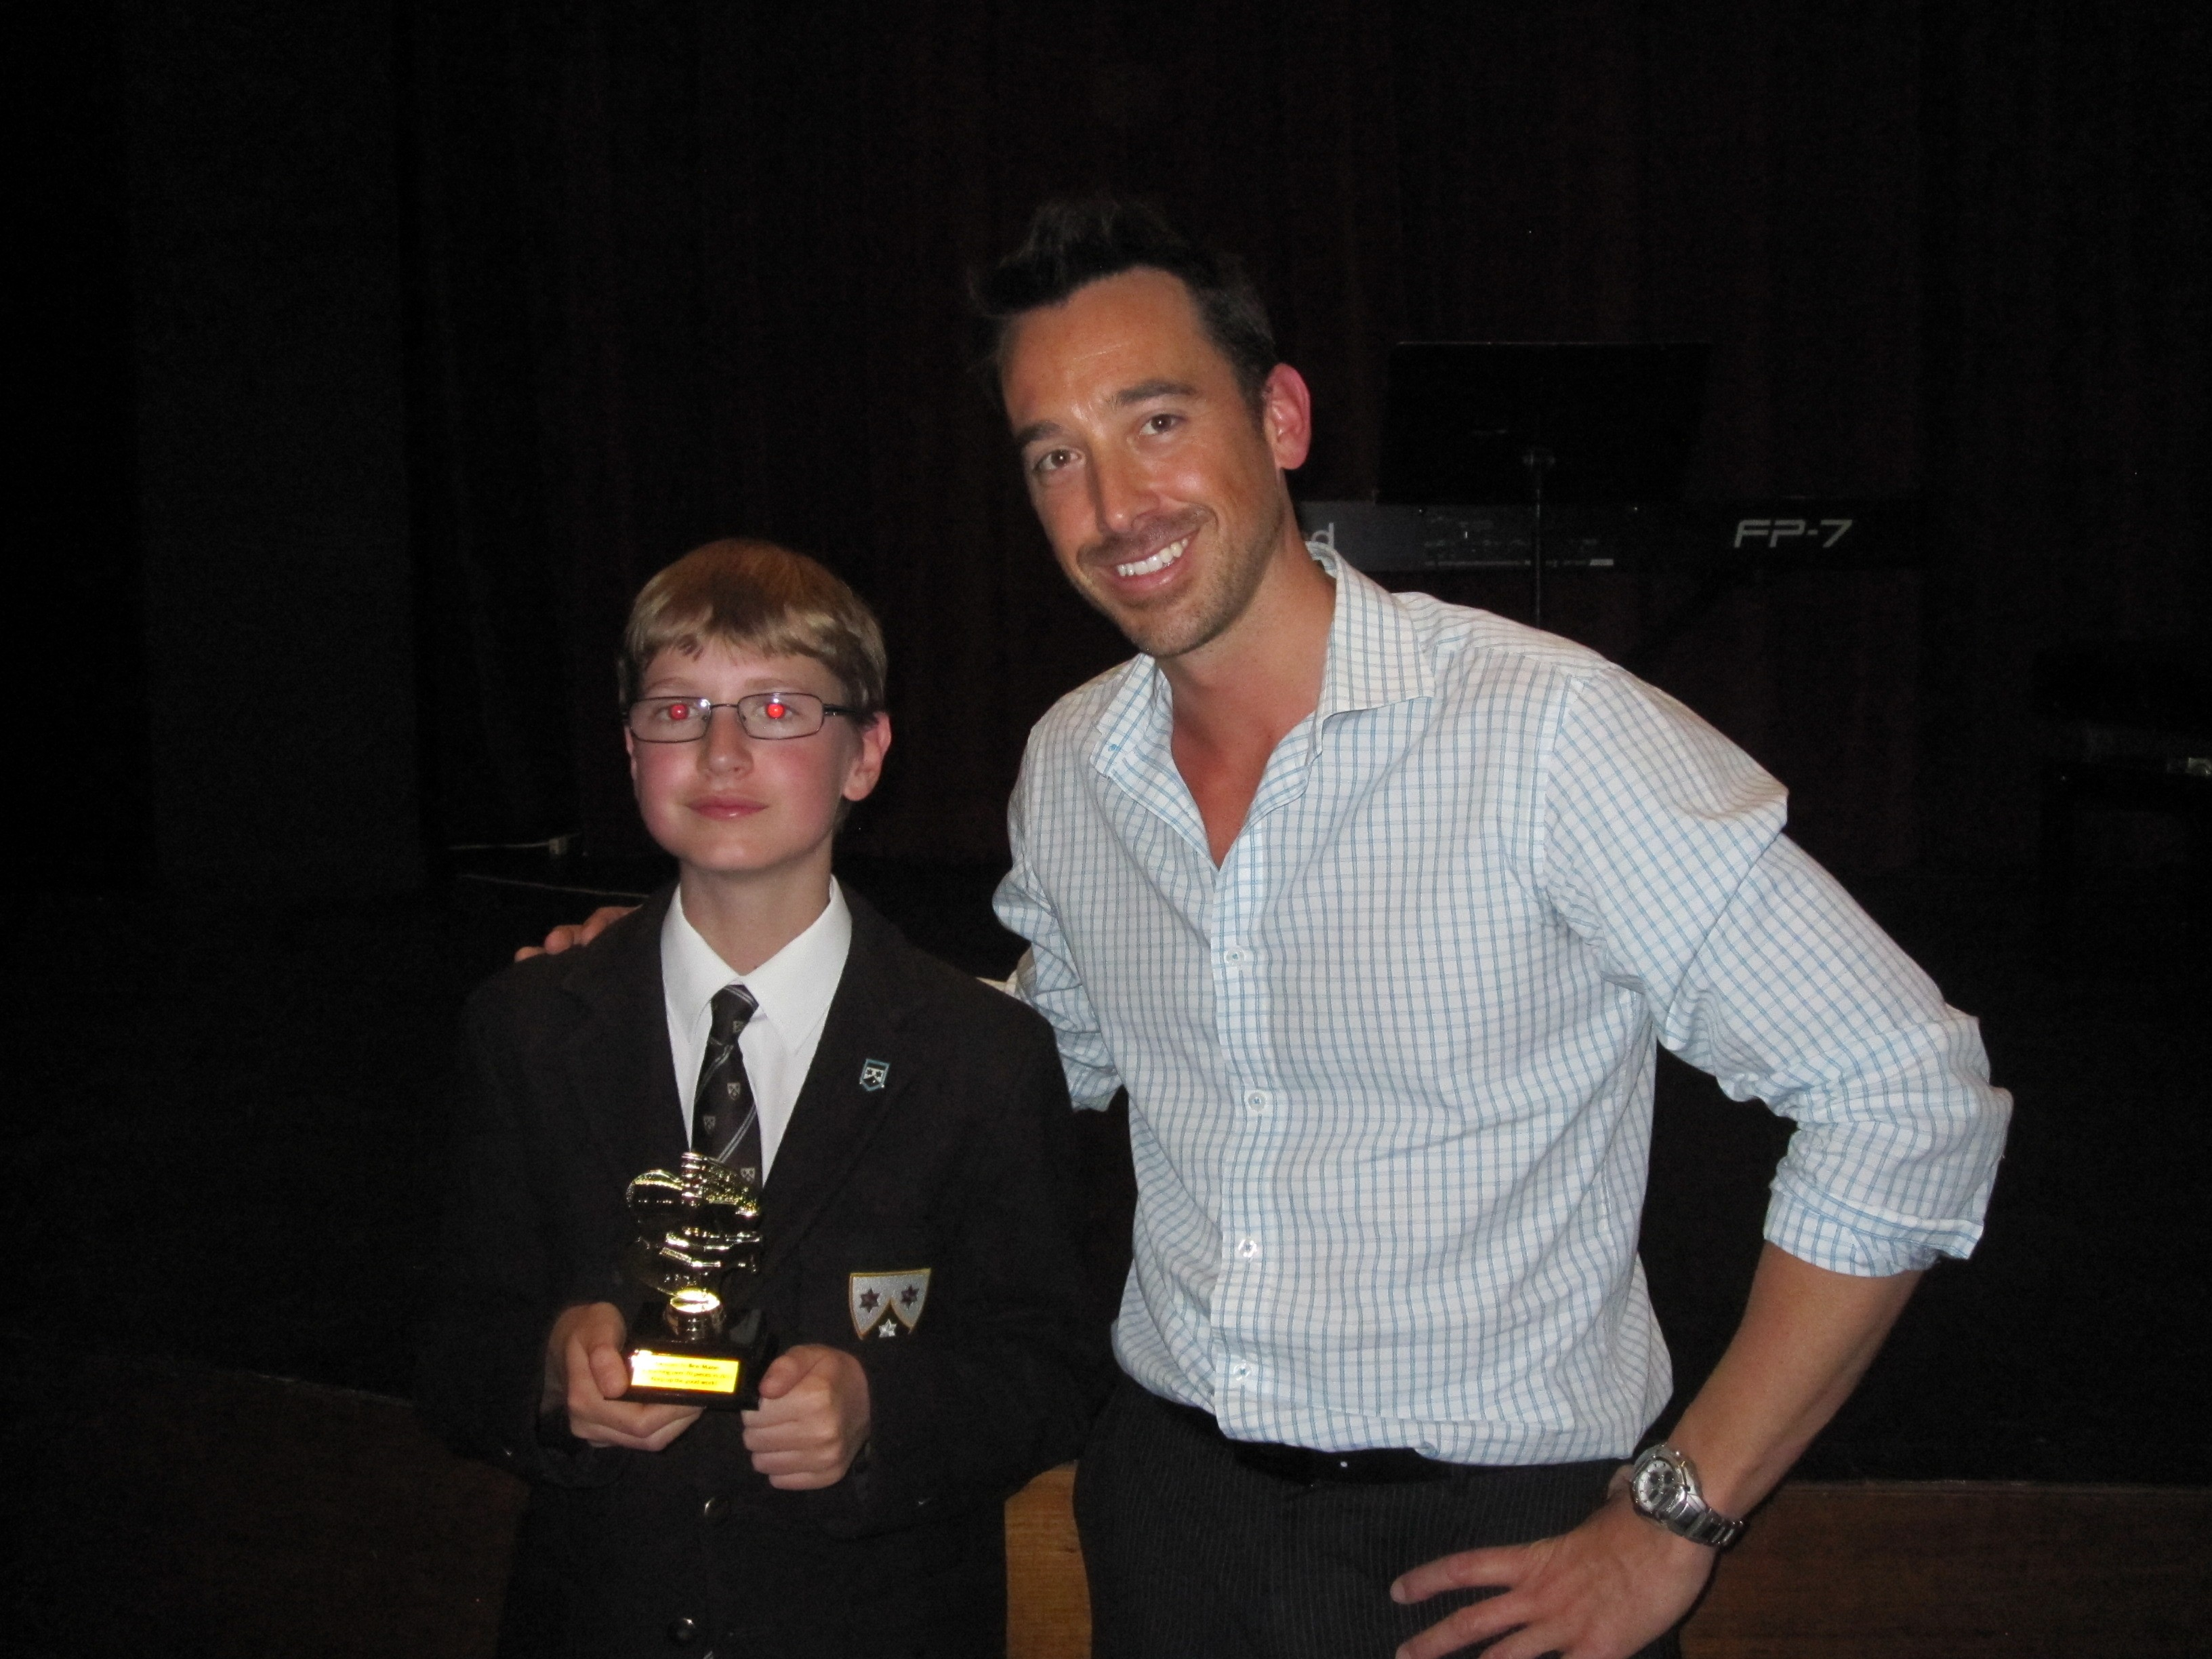 Ben with his award and Tim Topham.